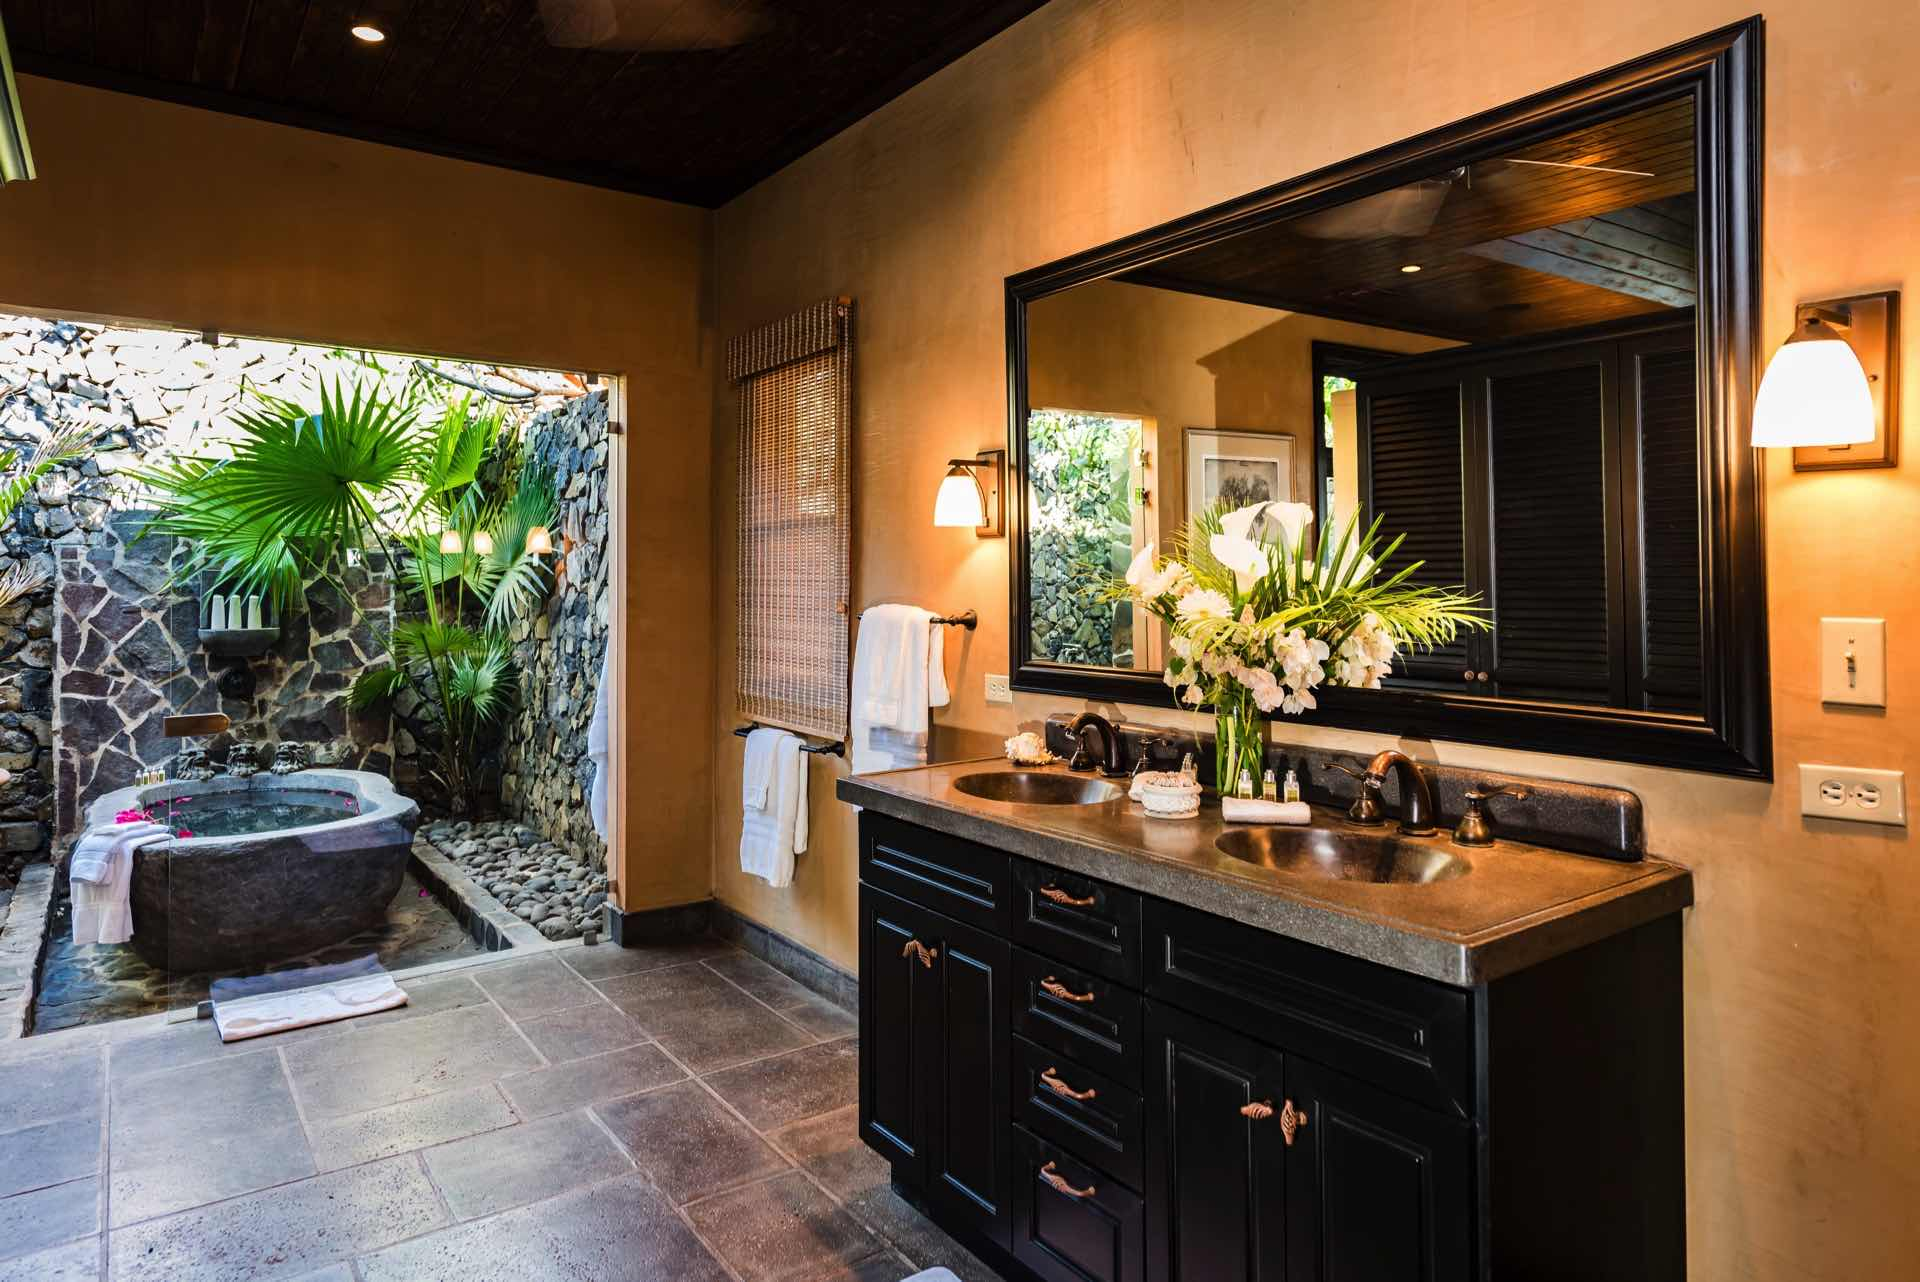 Bathroom with outside tub for relaxing